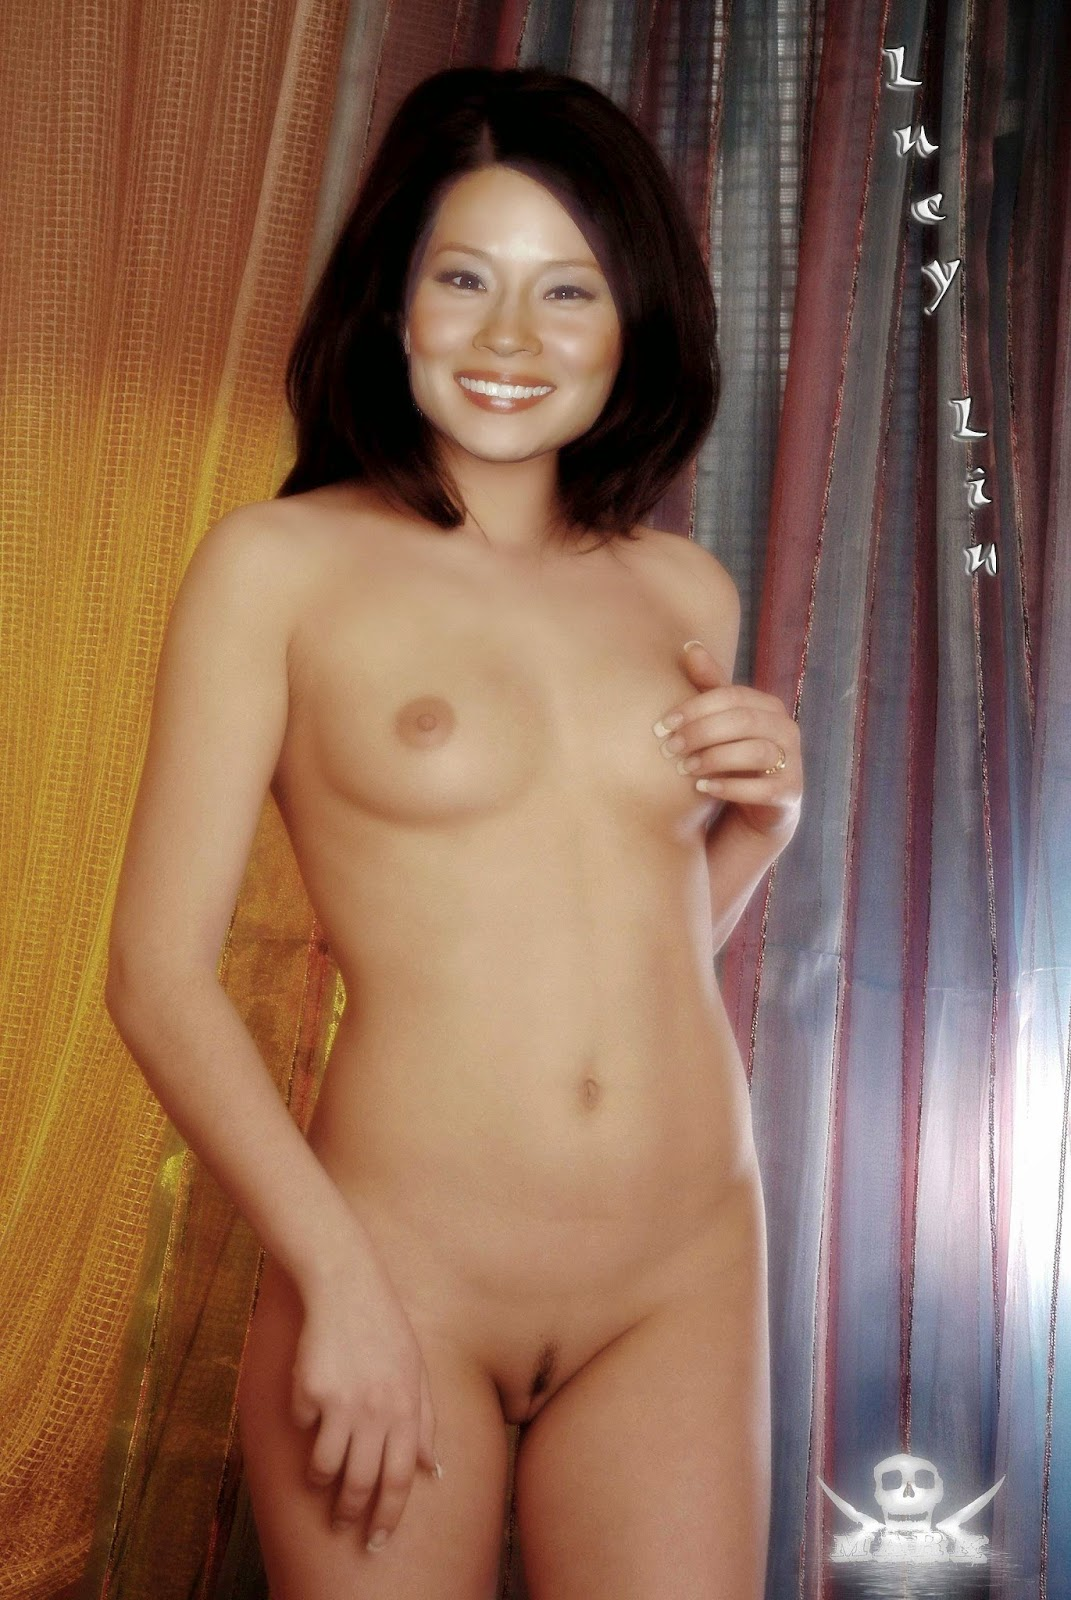 Lucy+Liu+Fakes+Naked+Gallery+06 - Actres Asian Nude